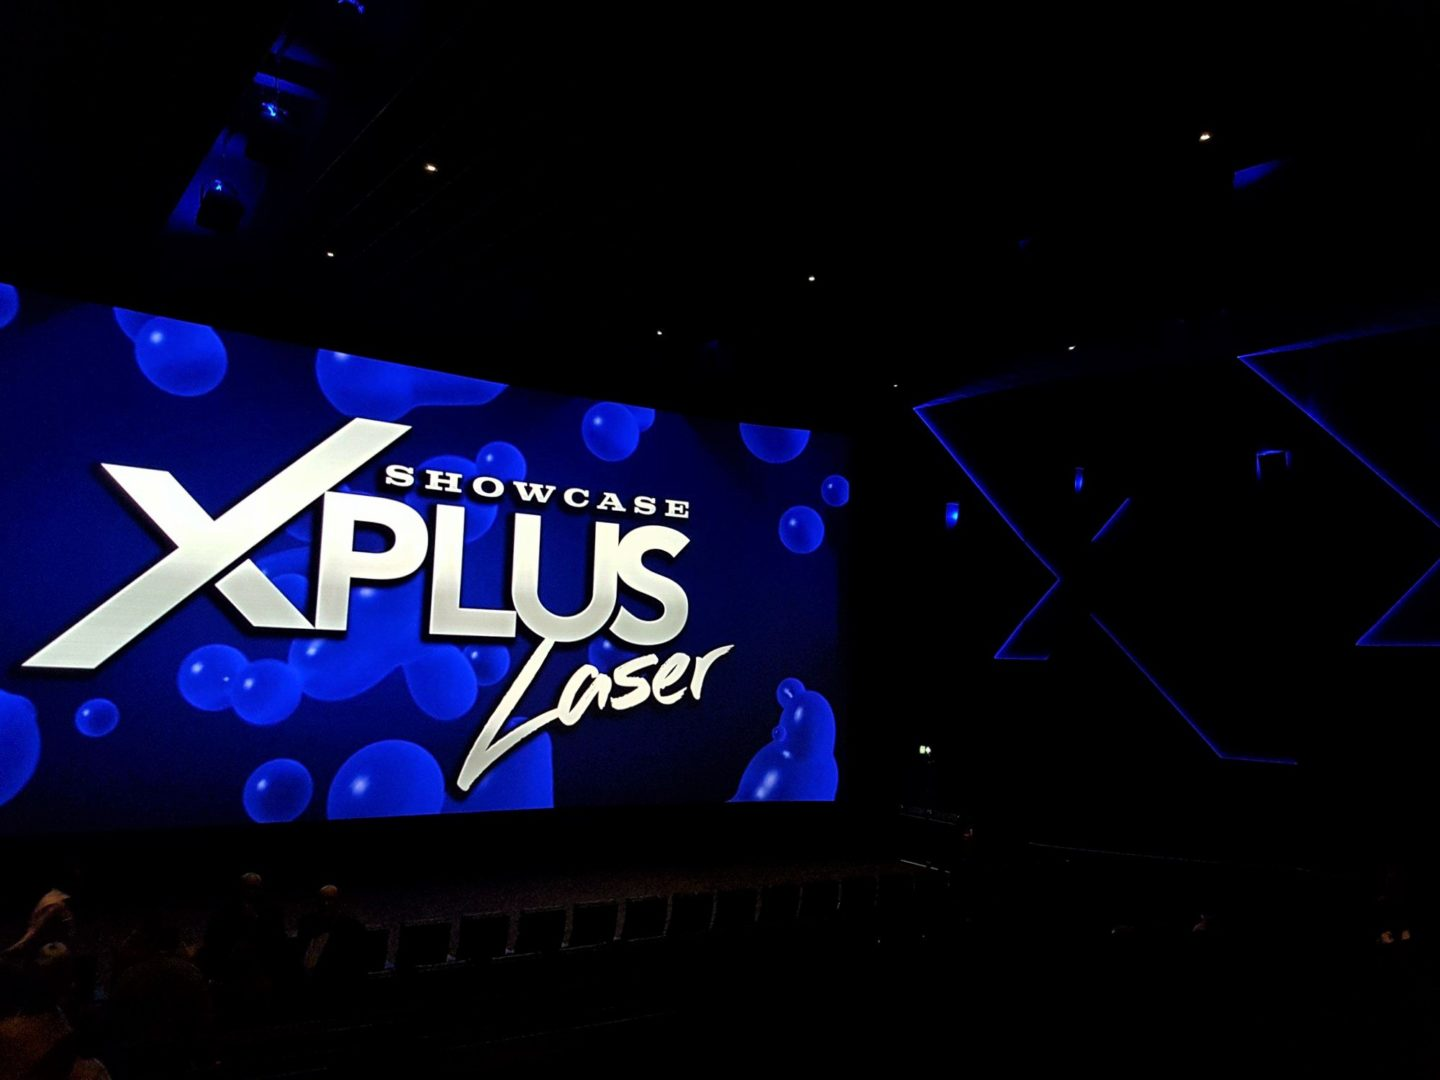 XPlus Laser screens, now at Showcase Cinema de Lux Bluewater